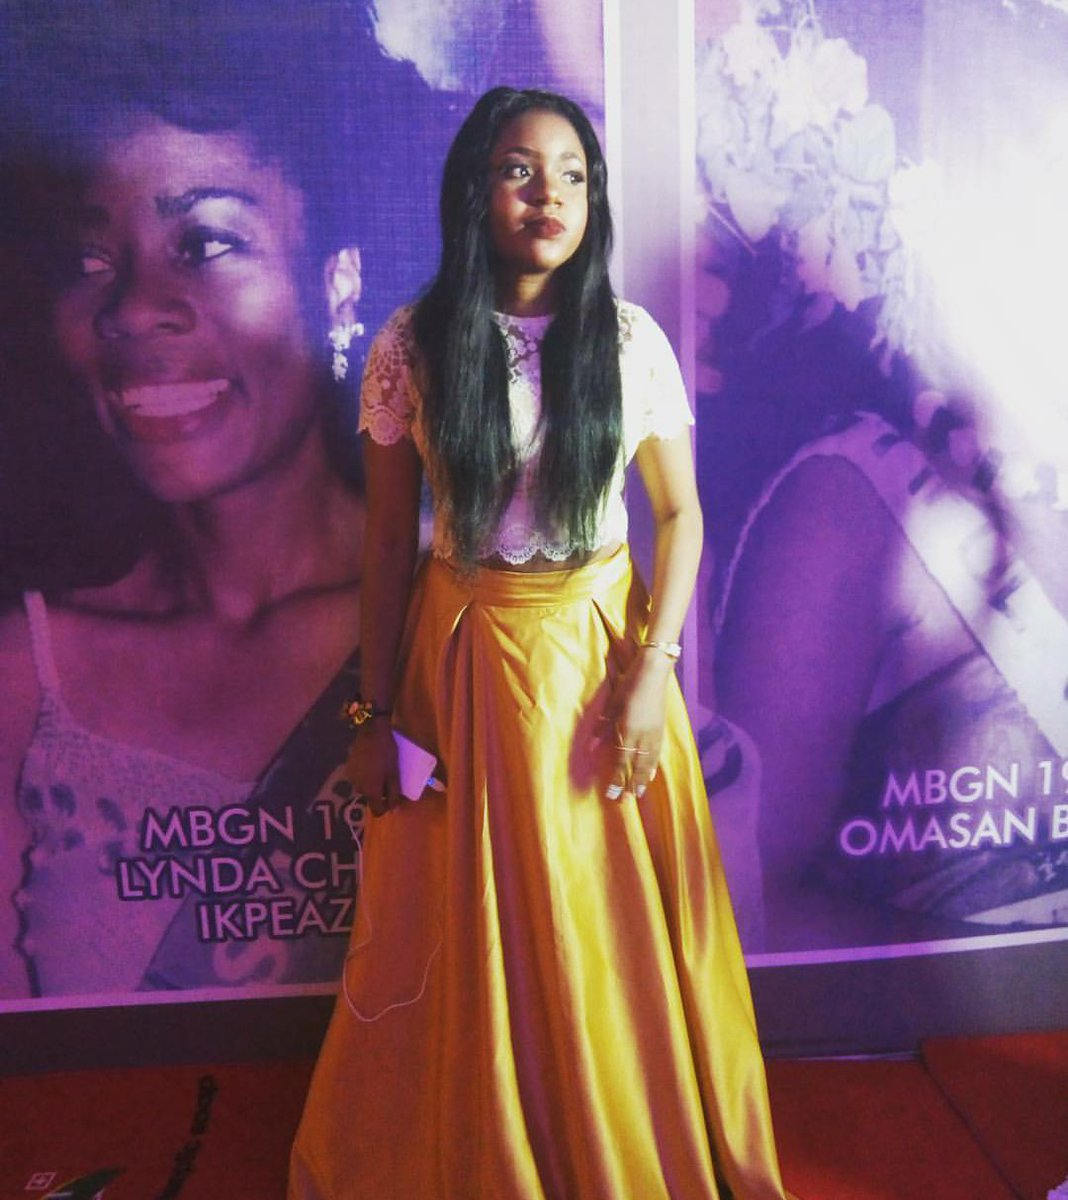 BellaNaija - First Photos! All the Lovely People for the Most Beautiful Girl in Nigeria 2017 | BNxMBGN2017